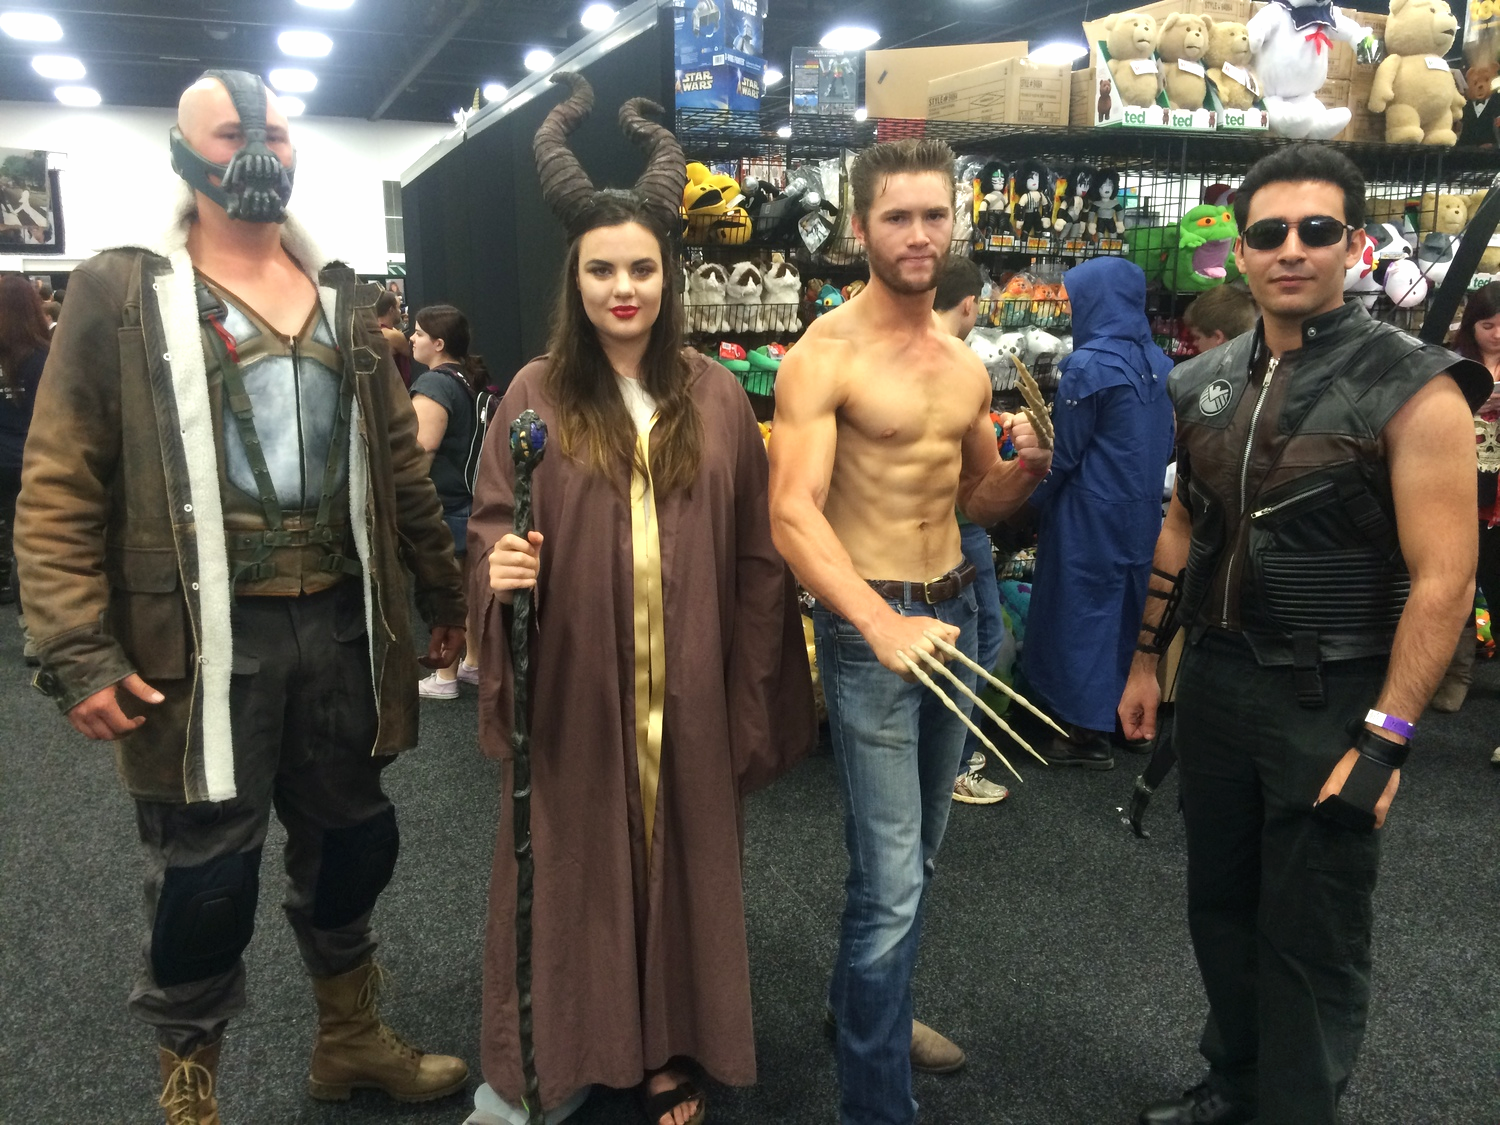 Bane, Maleficent, Wolverine, and Hawkeye! With friends like these, you won't have enemies.